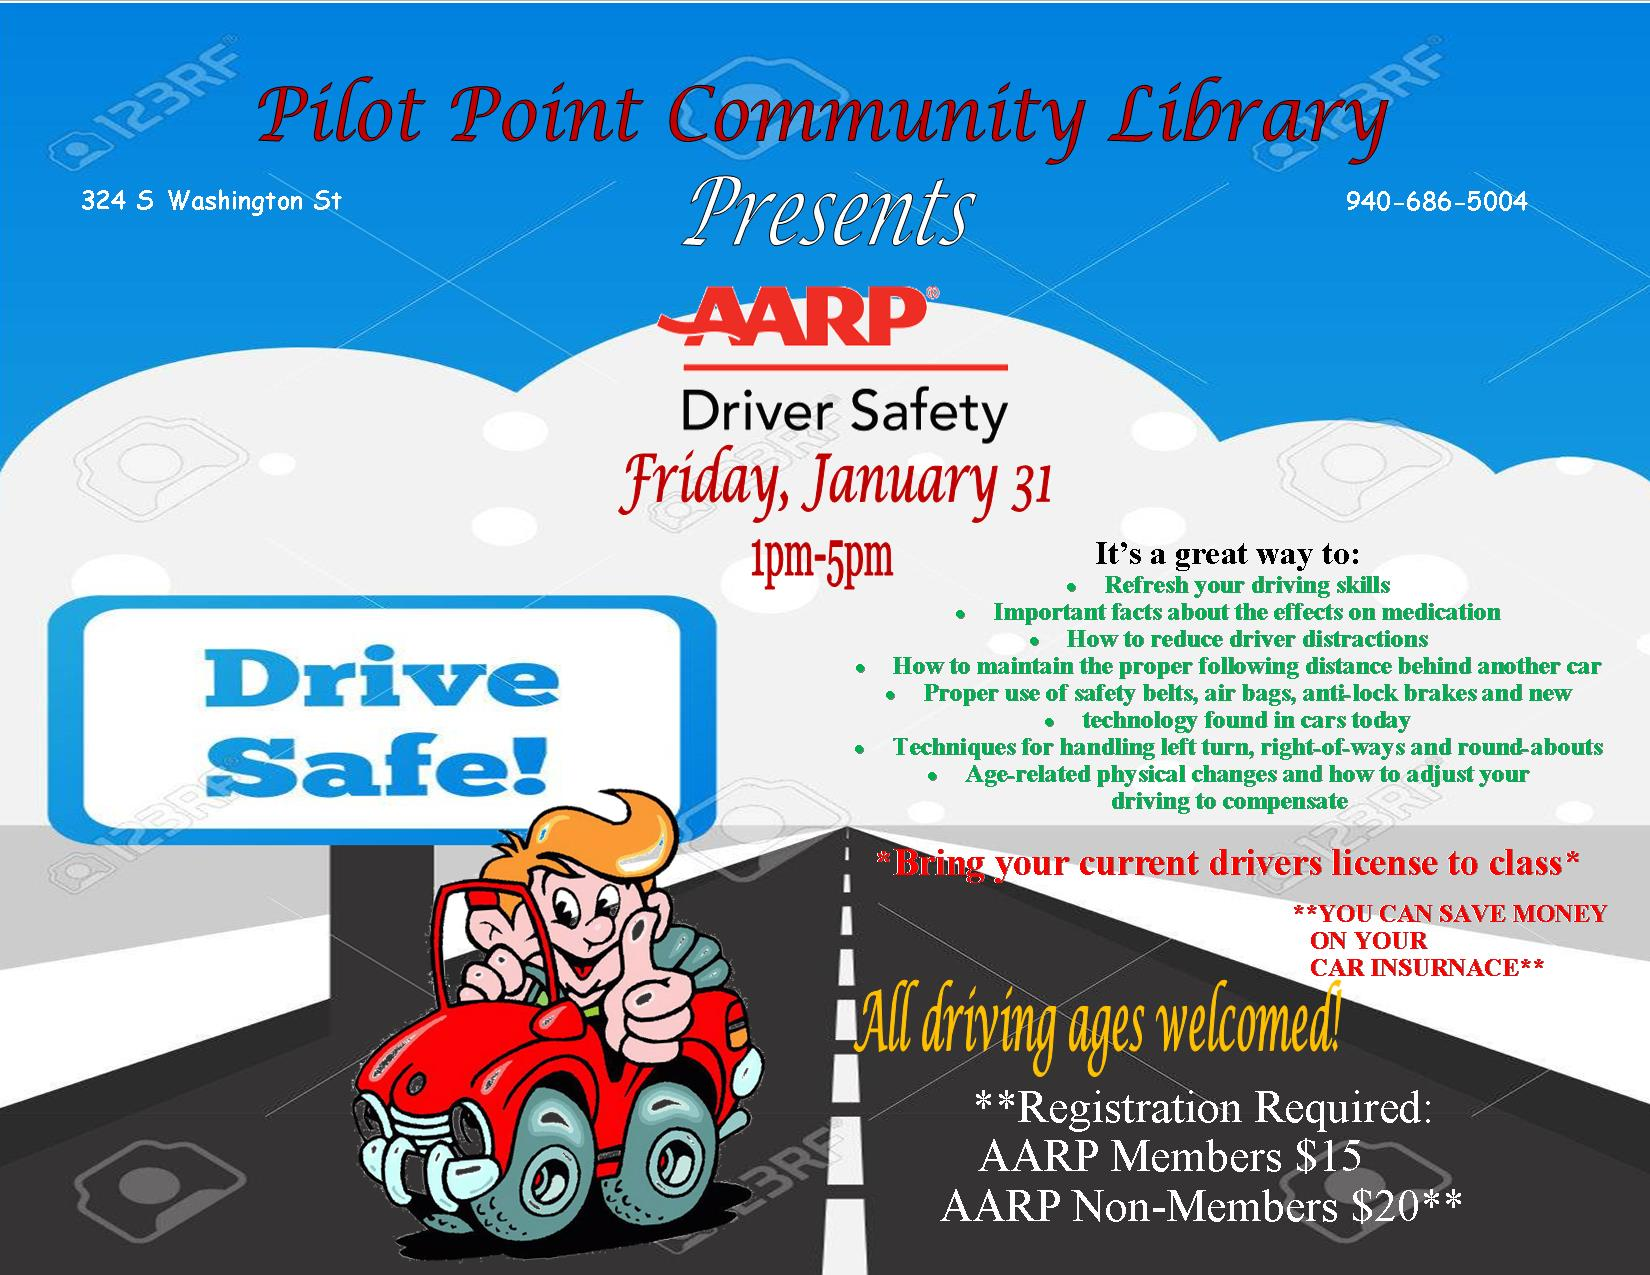 AARP Driver Safety flier